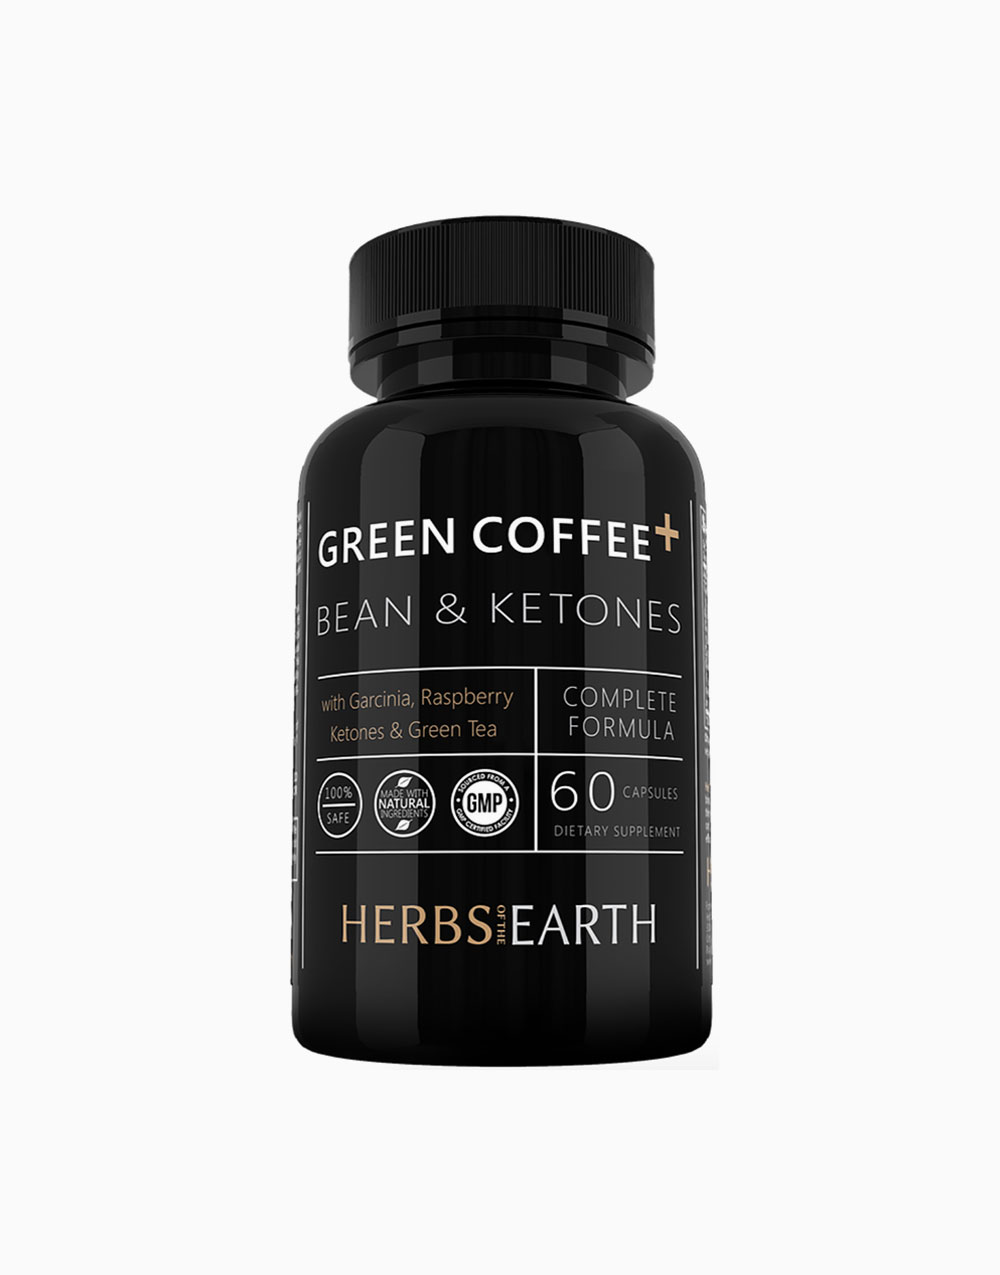 Green Coffee+: 4-in-1 Green Coffee Bean (800mg, 60 capsules) by Herbs of the Earth